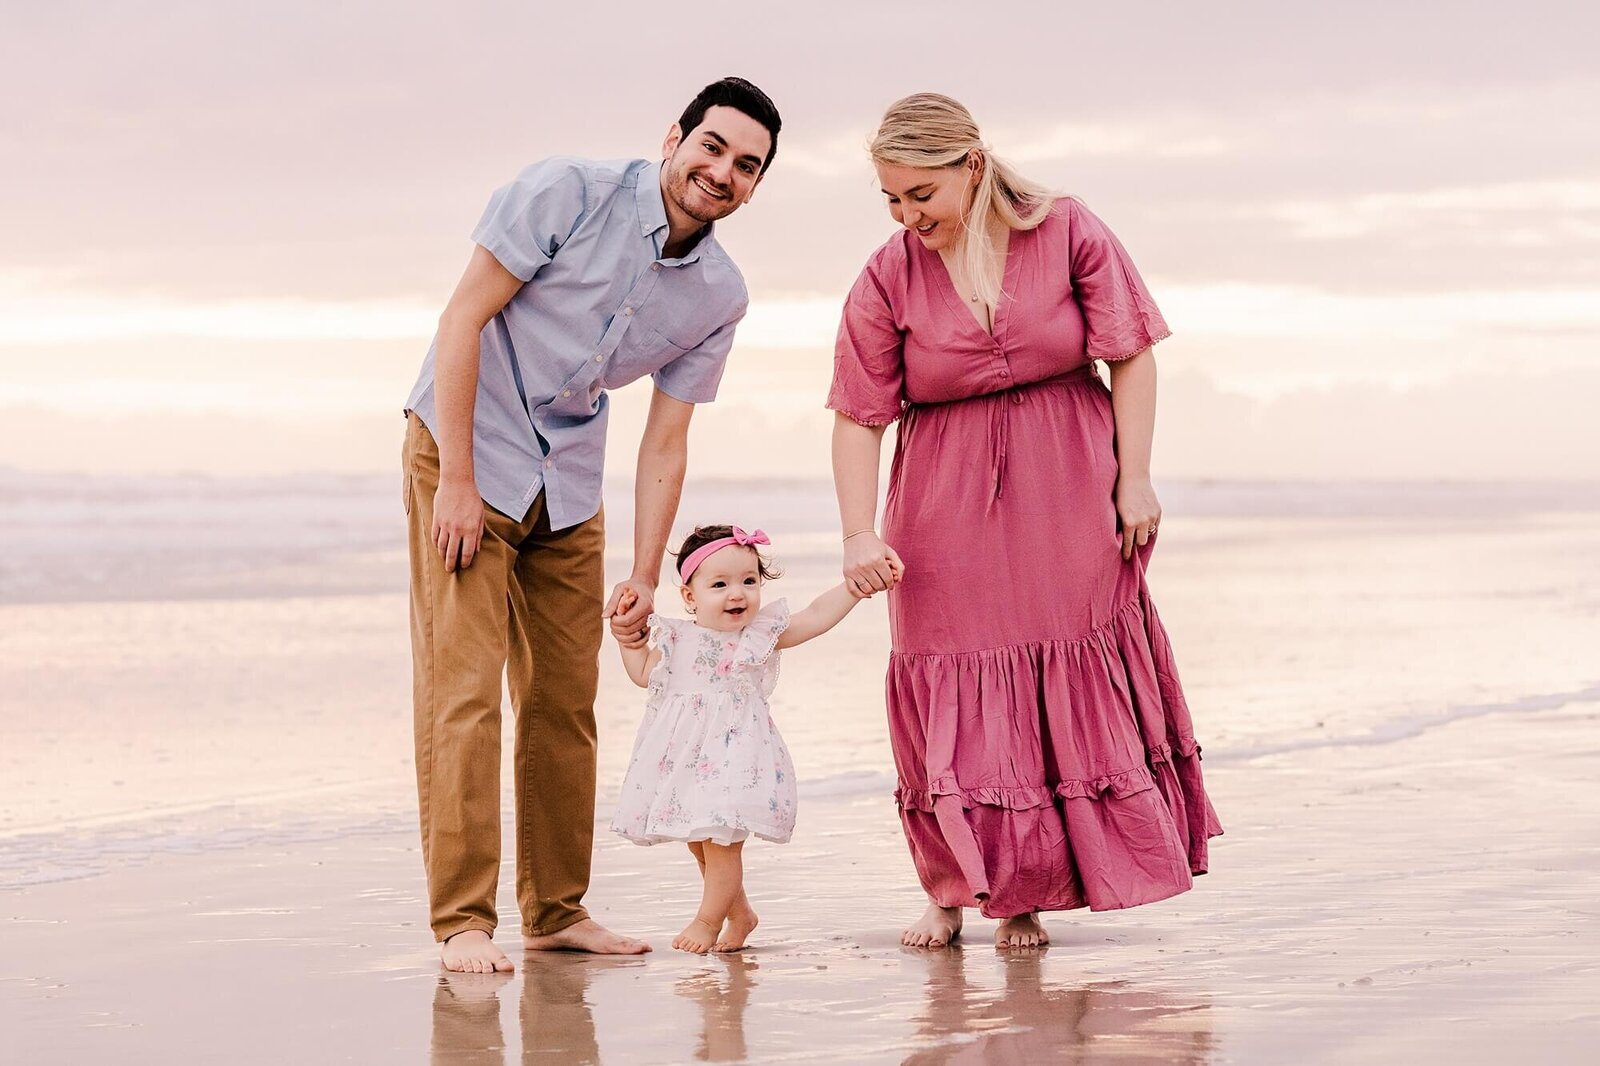 winterhaven-park-family-session-new-smyrna-beach-haleigh-nicole-photography_0006